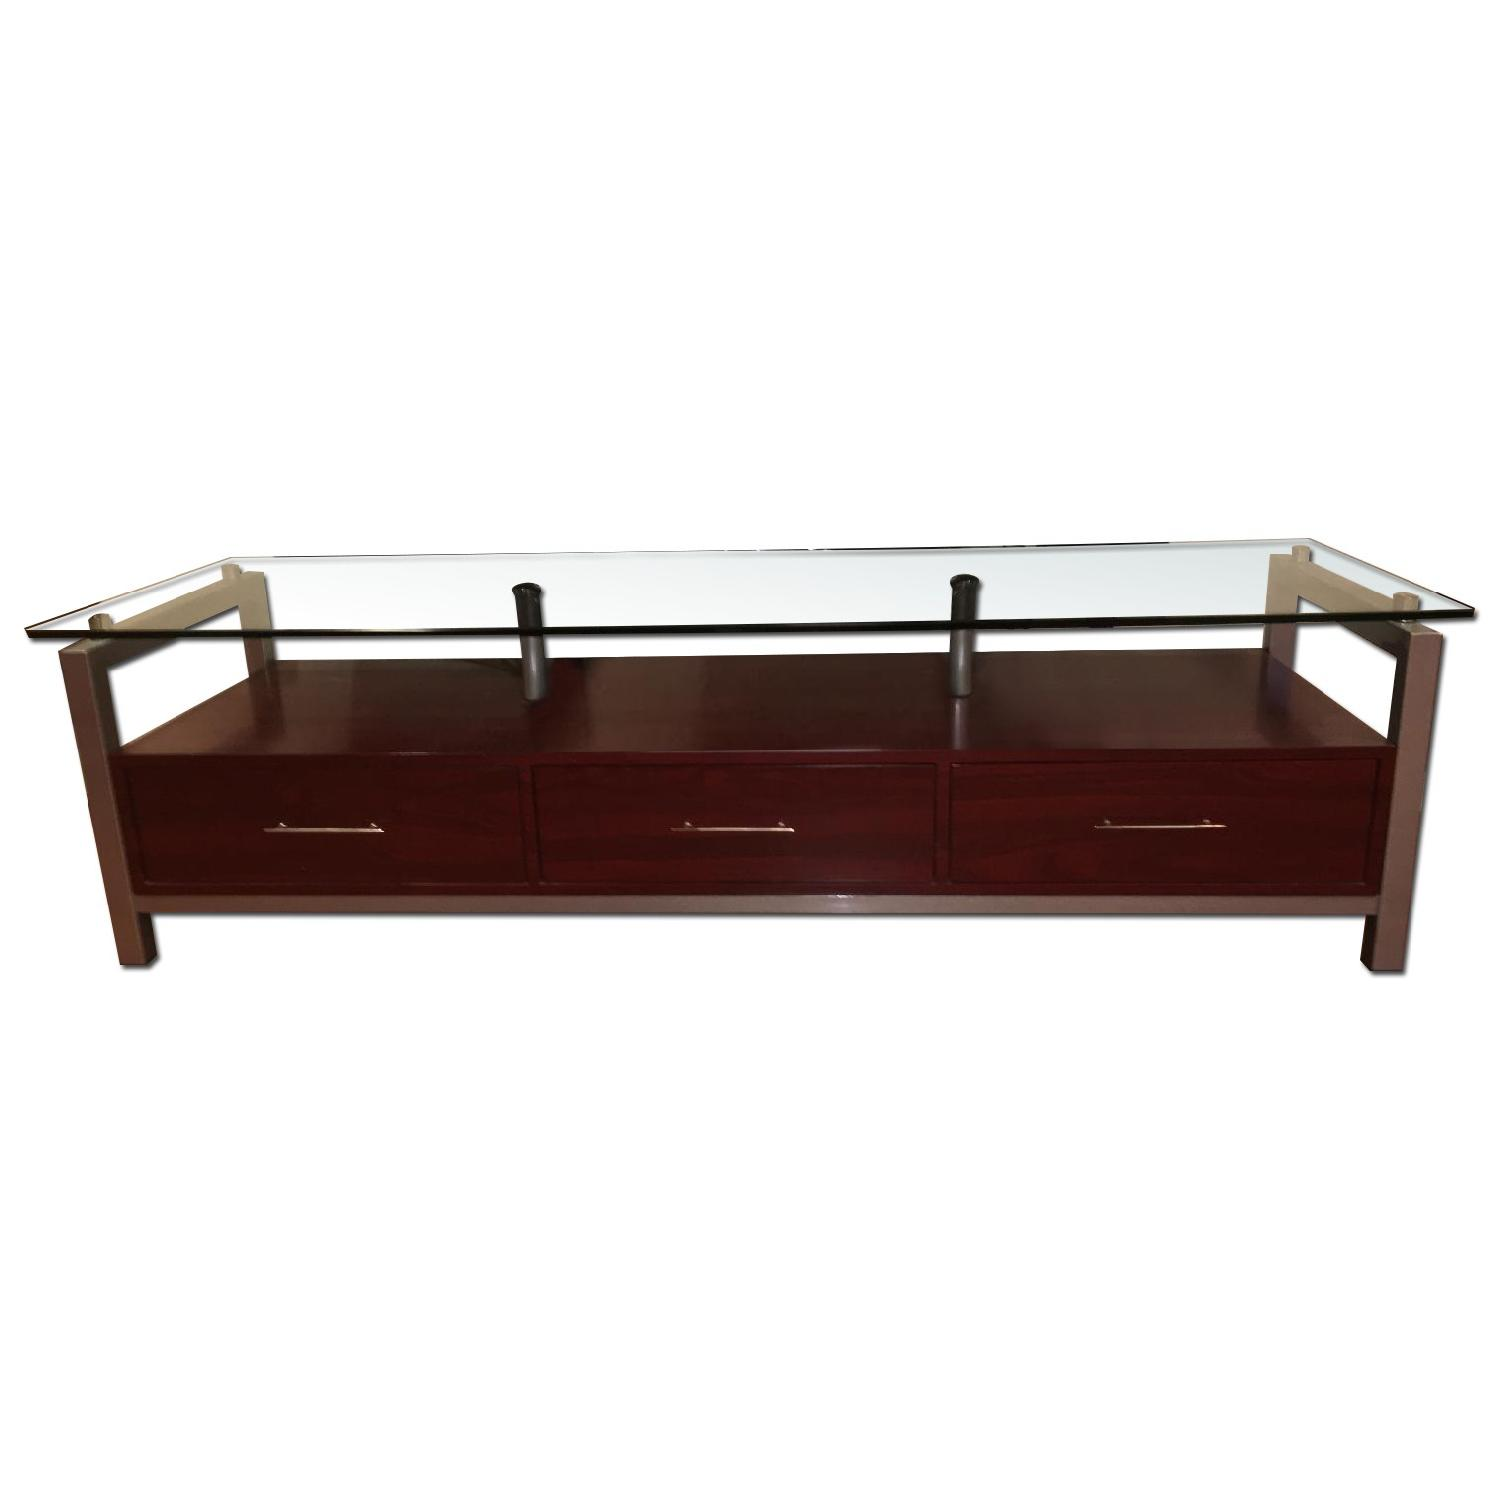 3 Drawer Wooden TV Stand w/ Metal & Glass Top - image-0